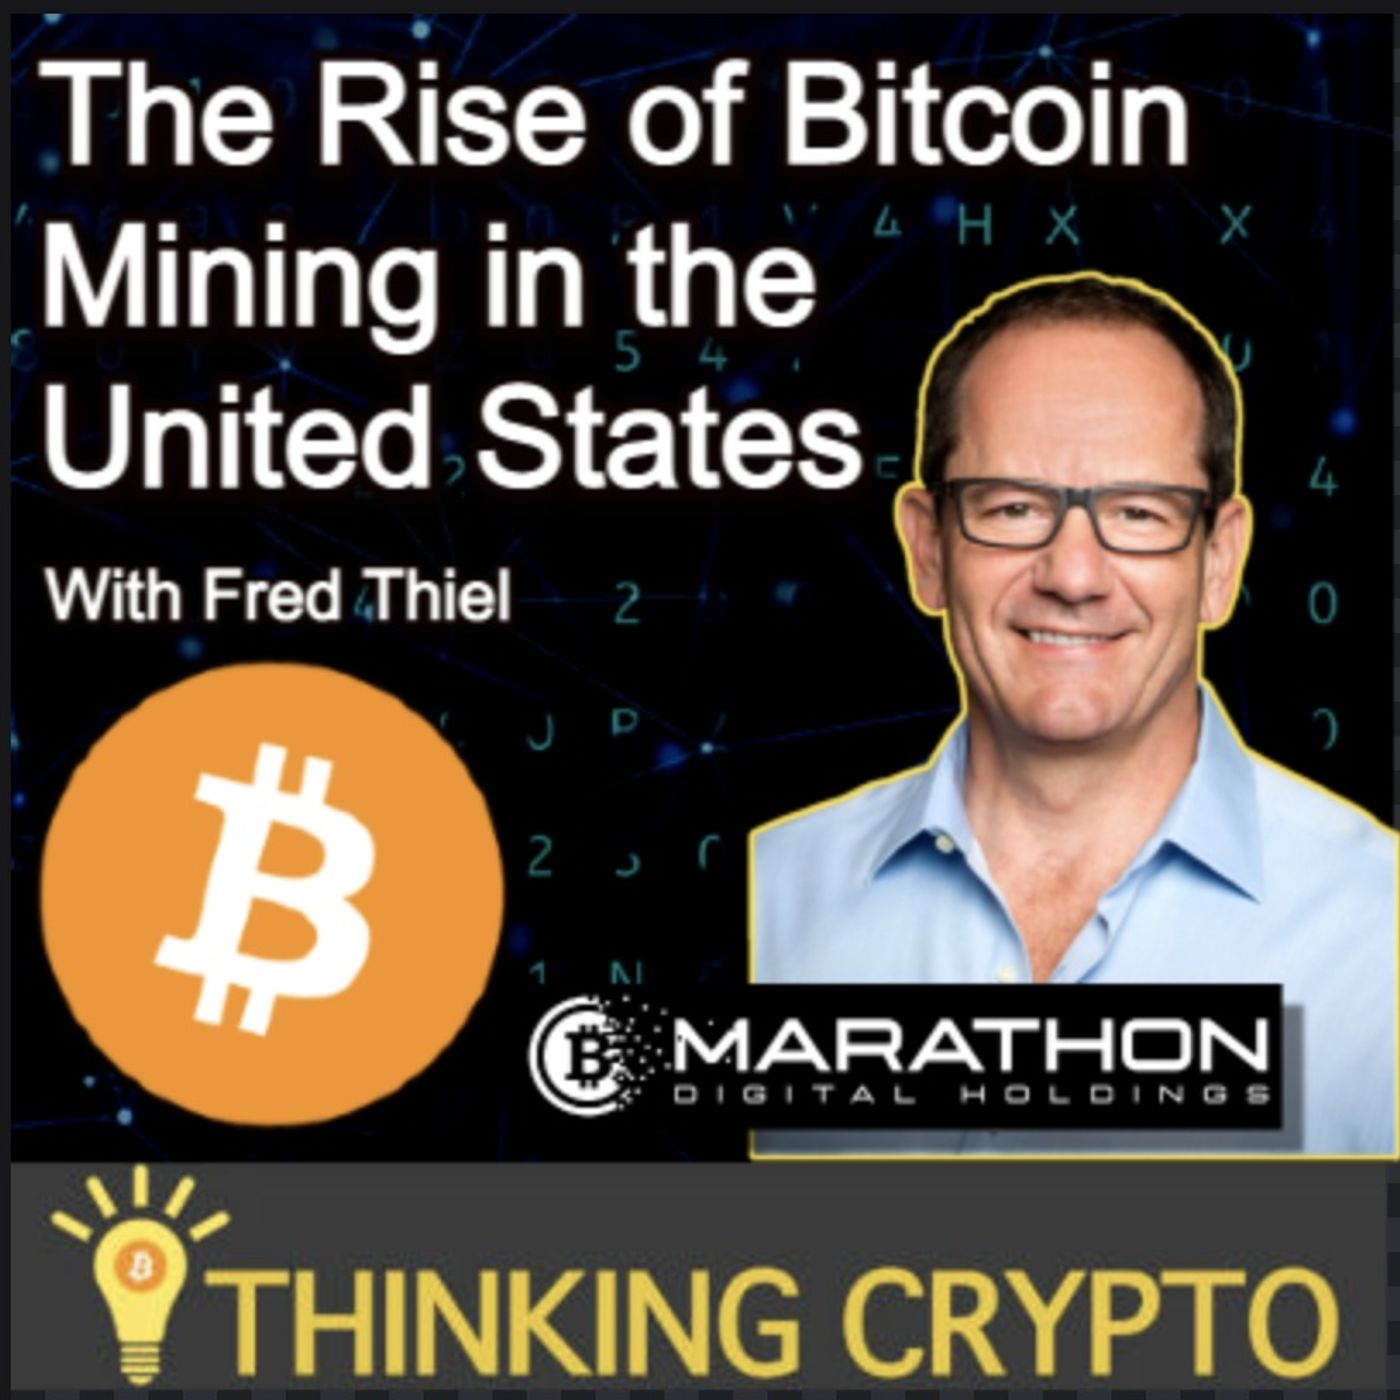 Fred Thiel Interview - Mining Bitcoin in the US - ESG, Elon Musk, El Salvador, BTC Mining Counsel